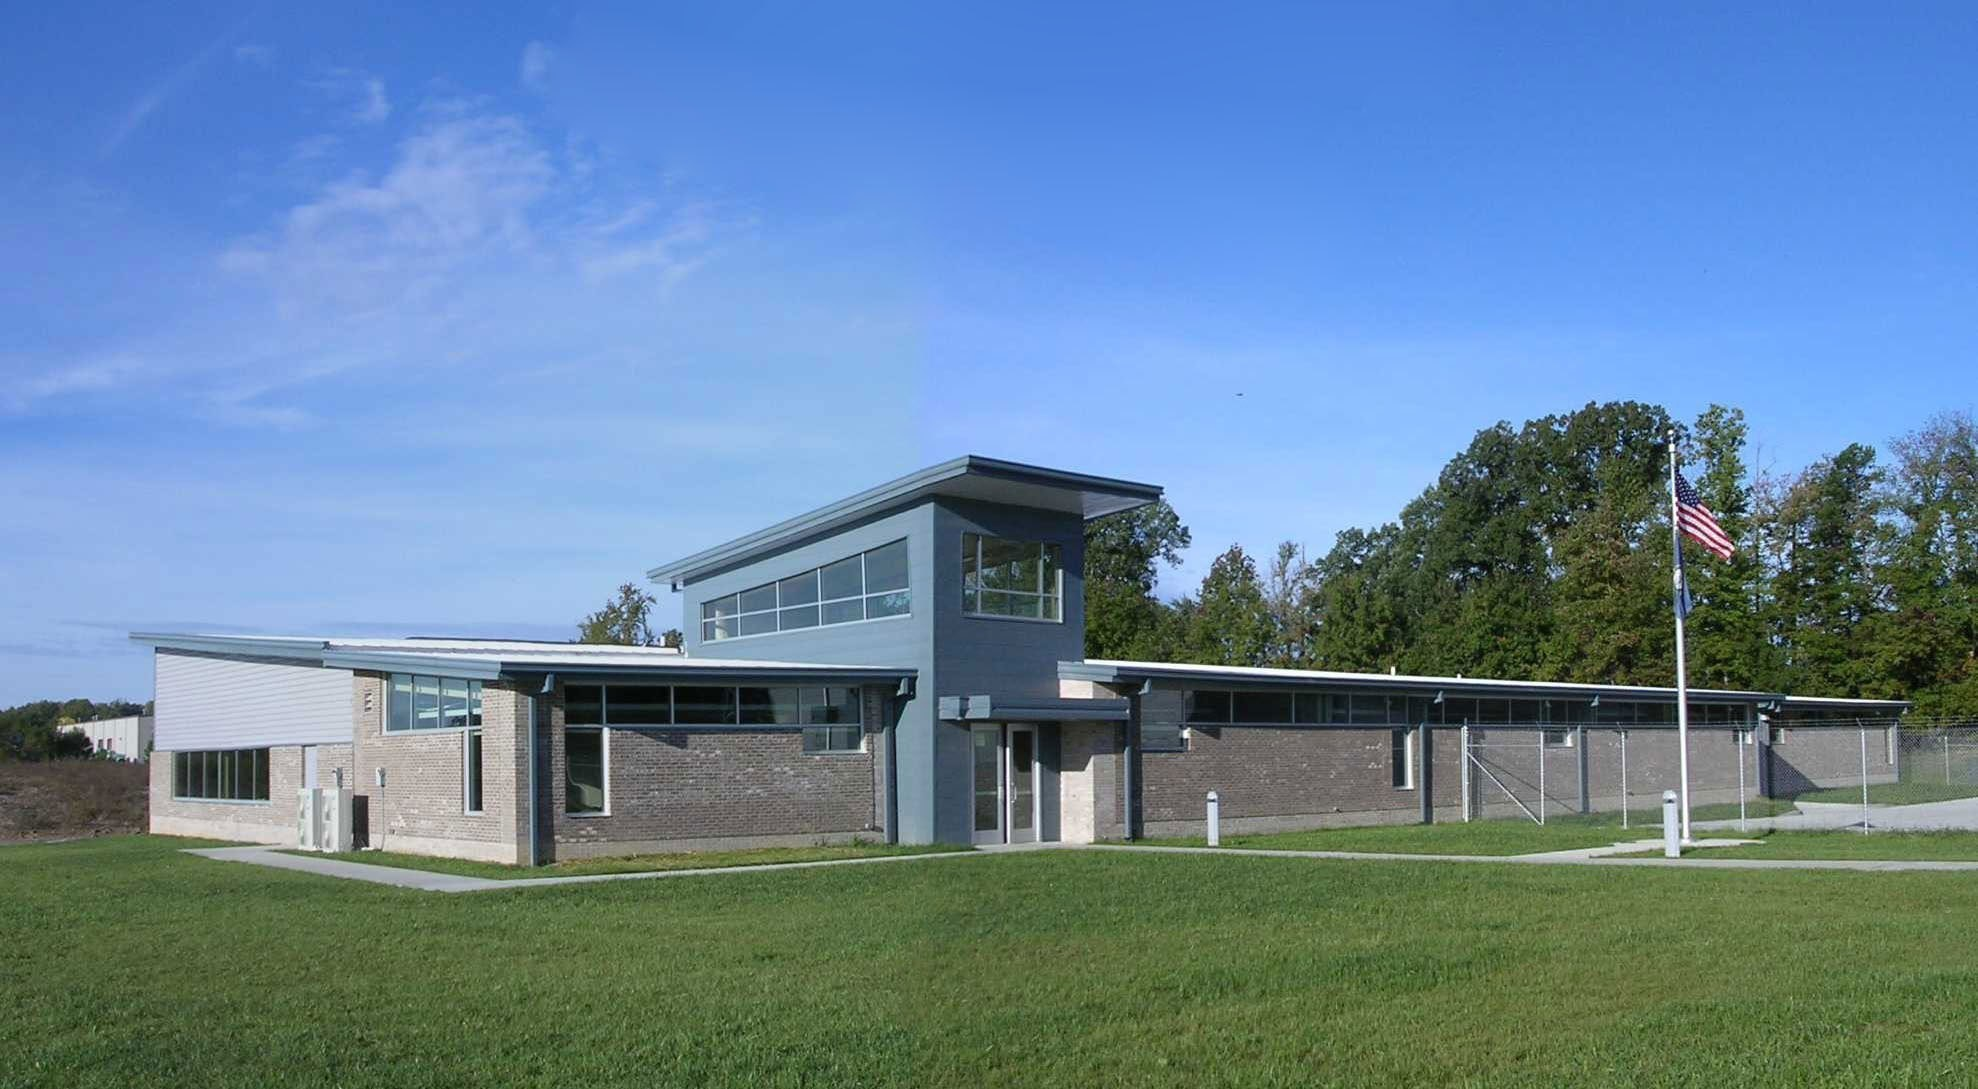 london-joint-operations-facility-exterior